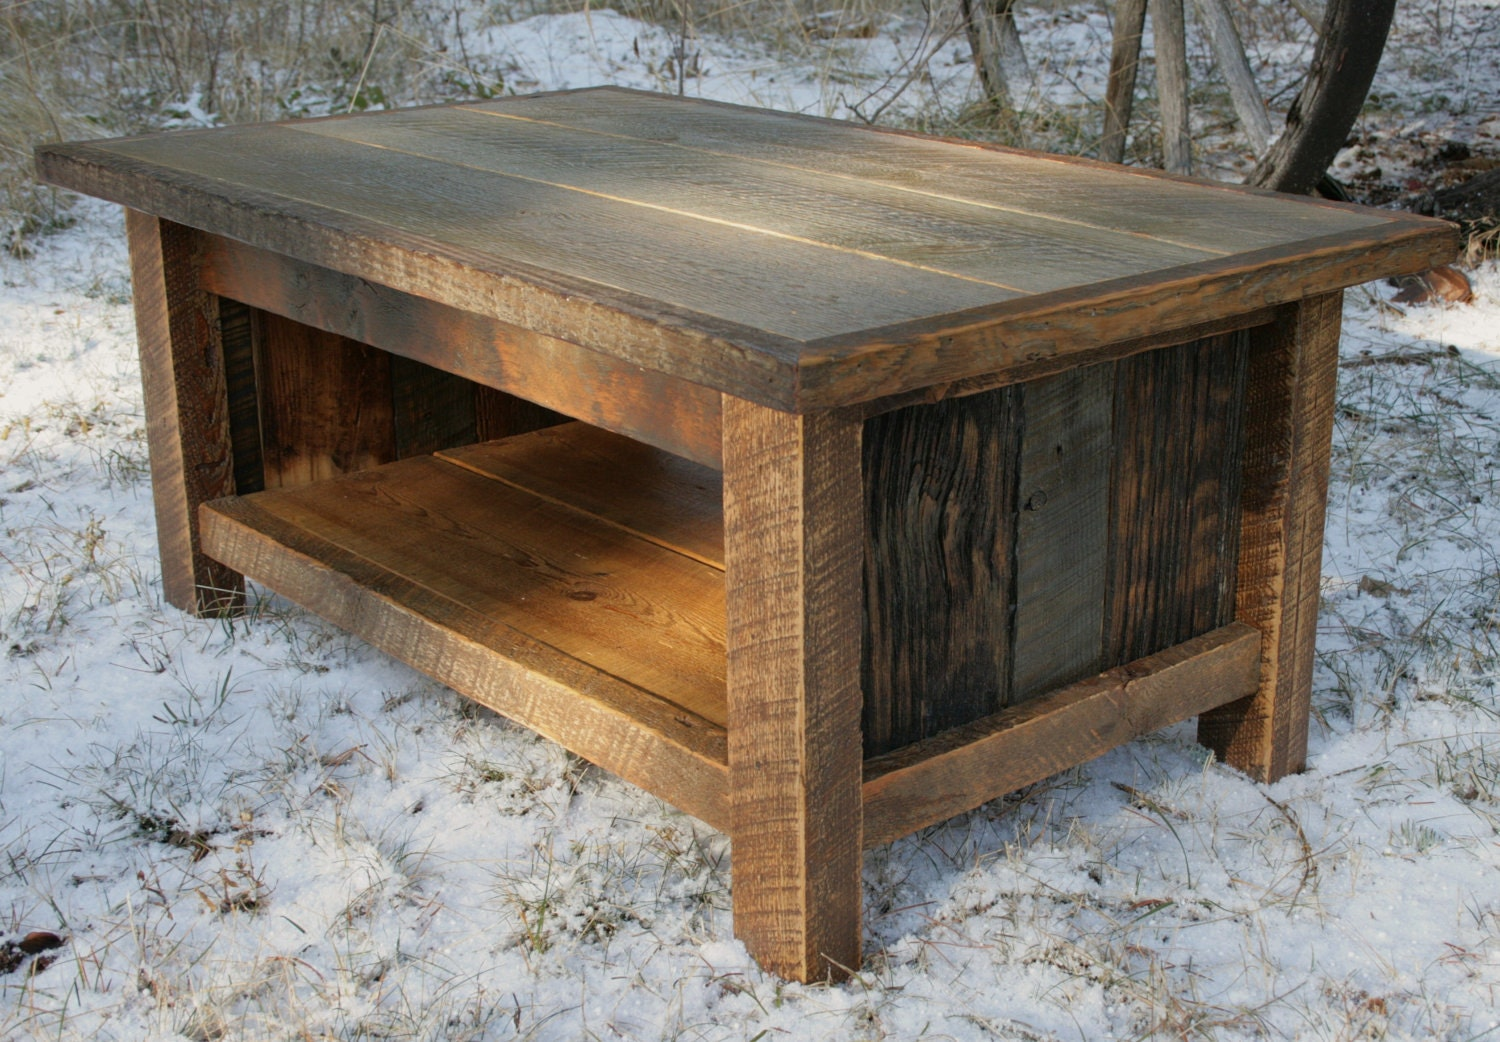 Rustic reclaimed coffee table by echopeakdesign on etsy Rustic wooden coffee tables